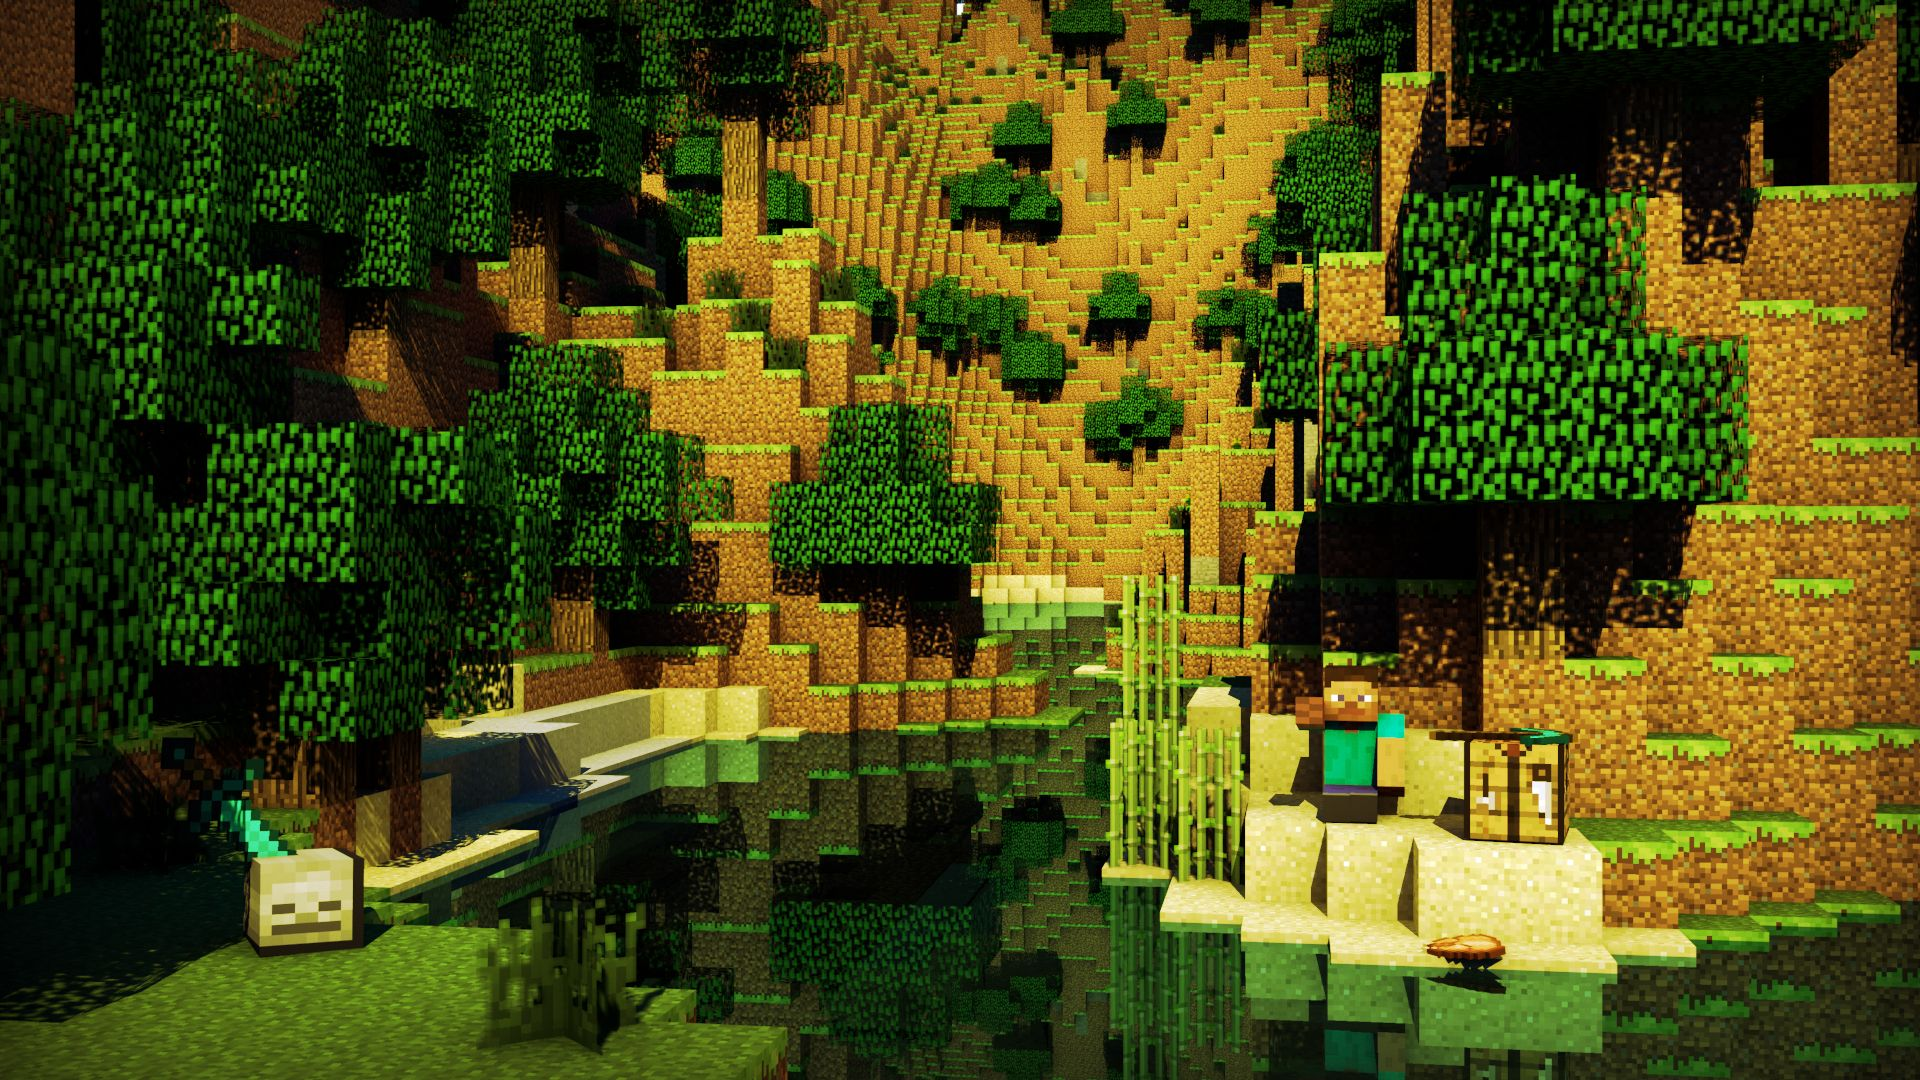 Minecraft Creeper [HD][1920x1080] Need iPhone 6S Plus